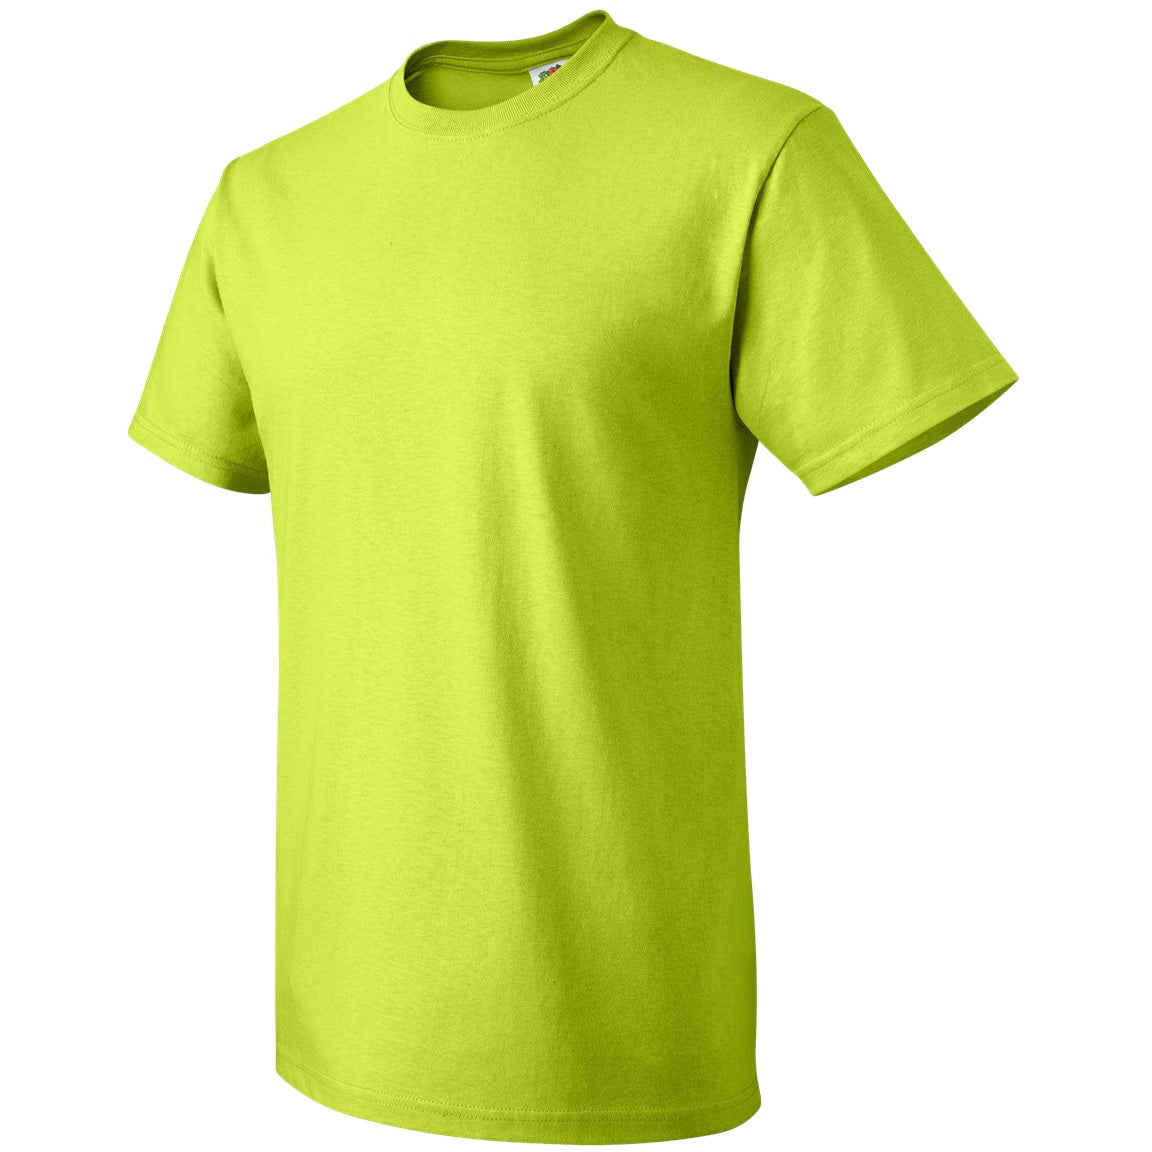 Fruit of the loom heavy cotton t shirt colors 100 for Www custom t shirts